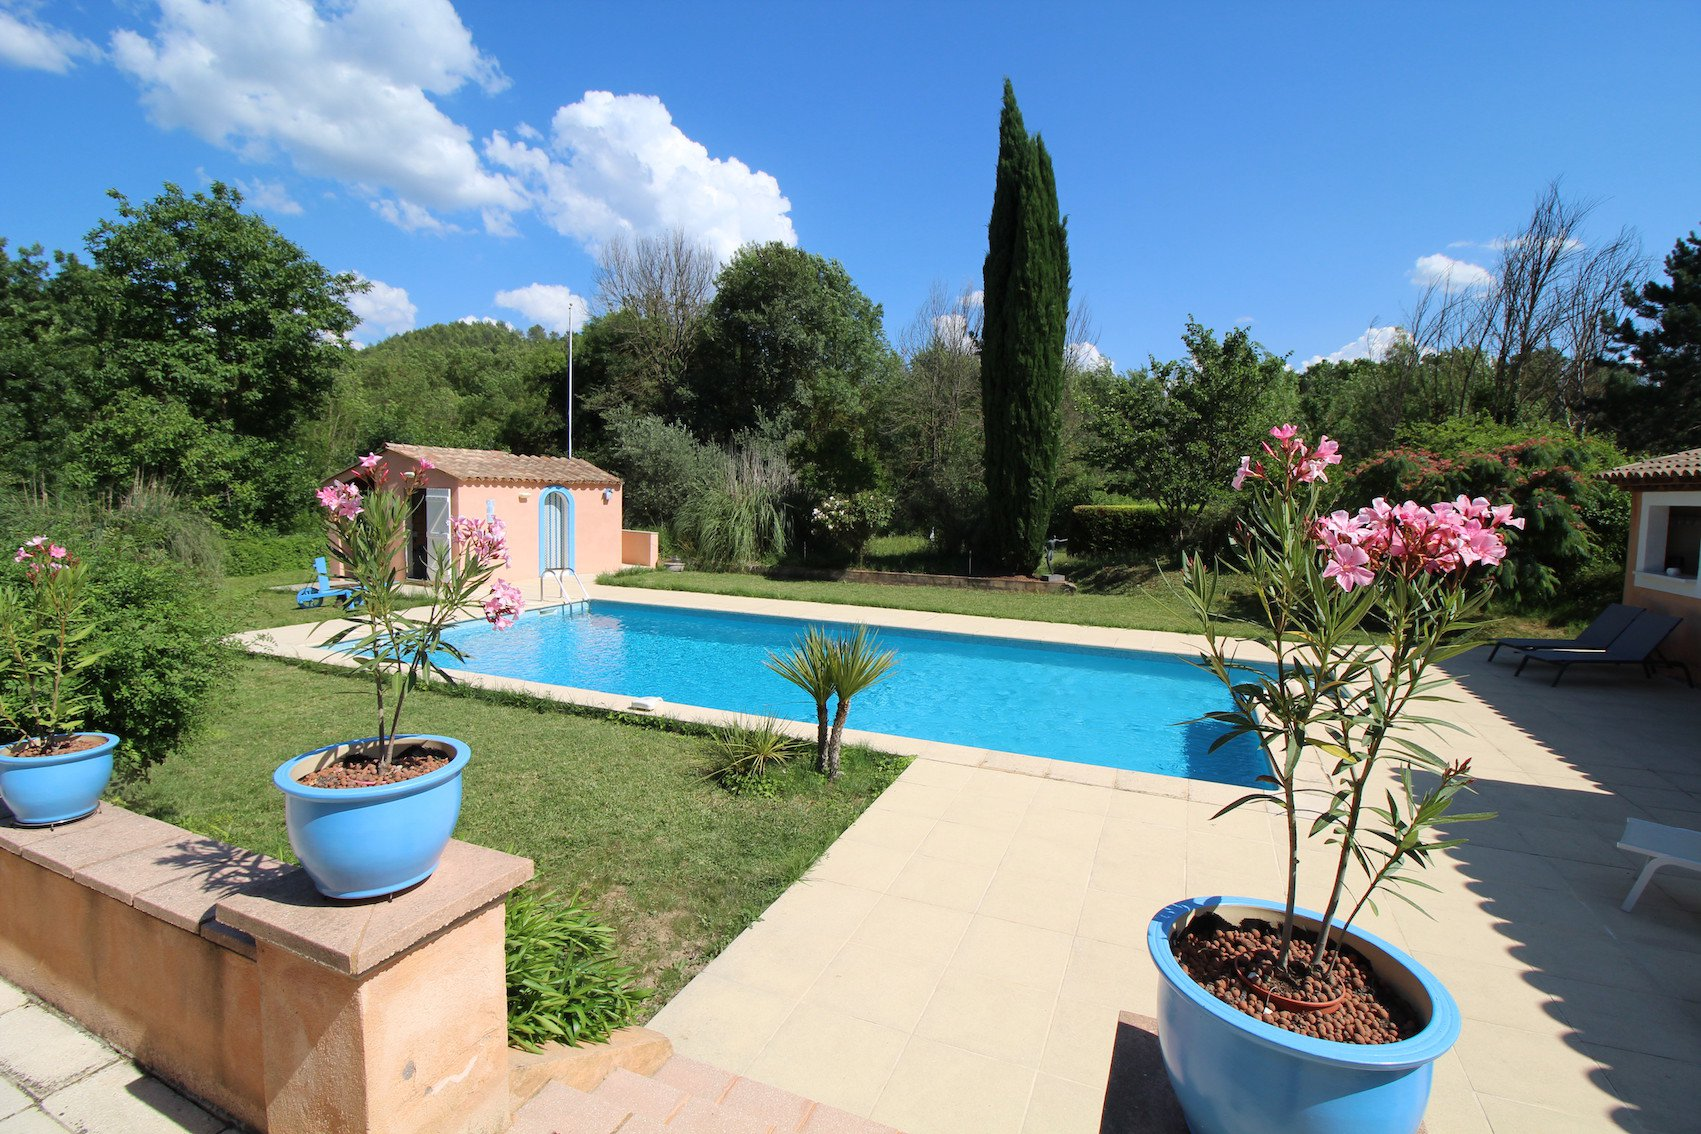 Le Val, a charming house in the heart of Green Provence